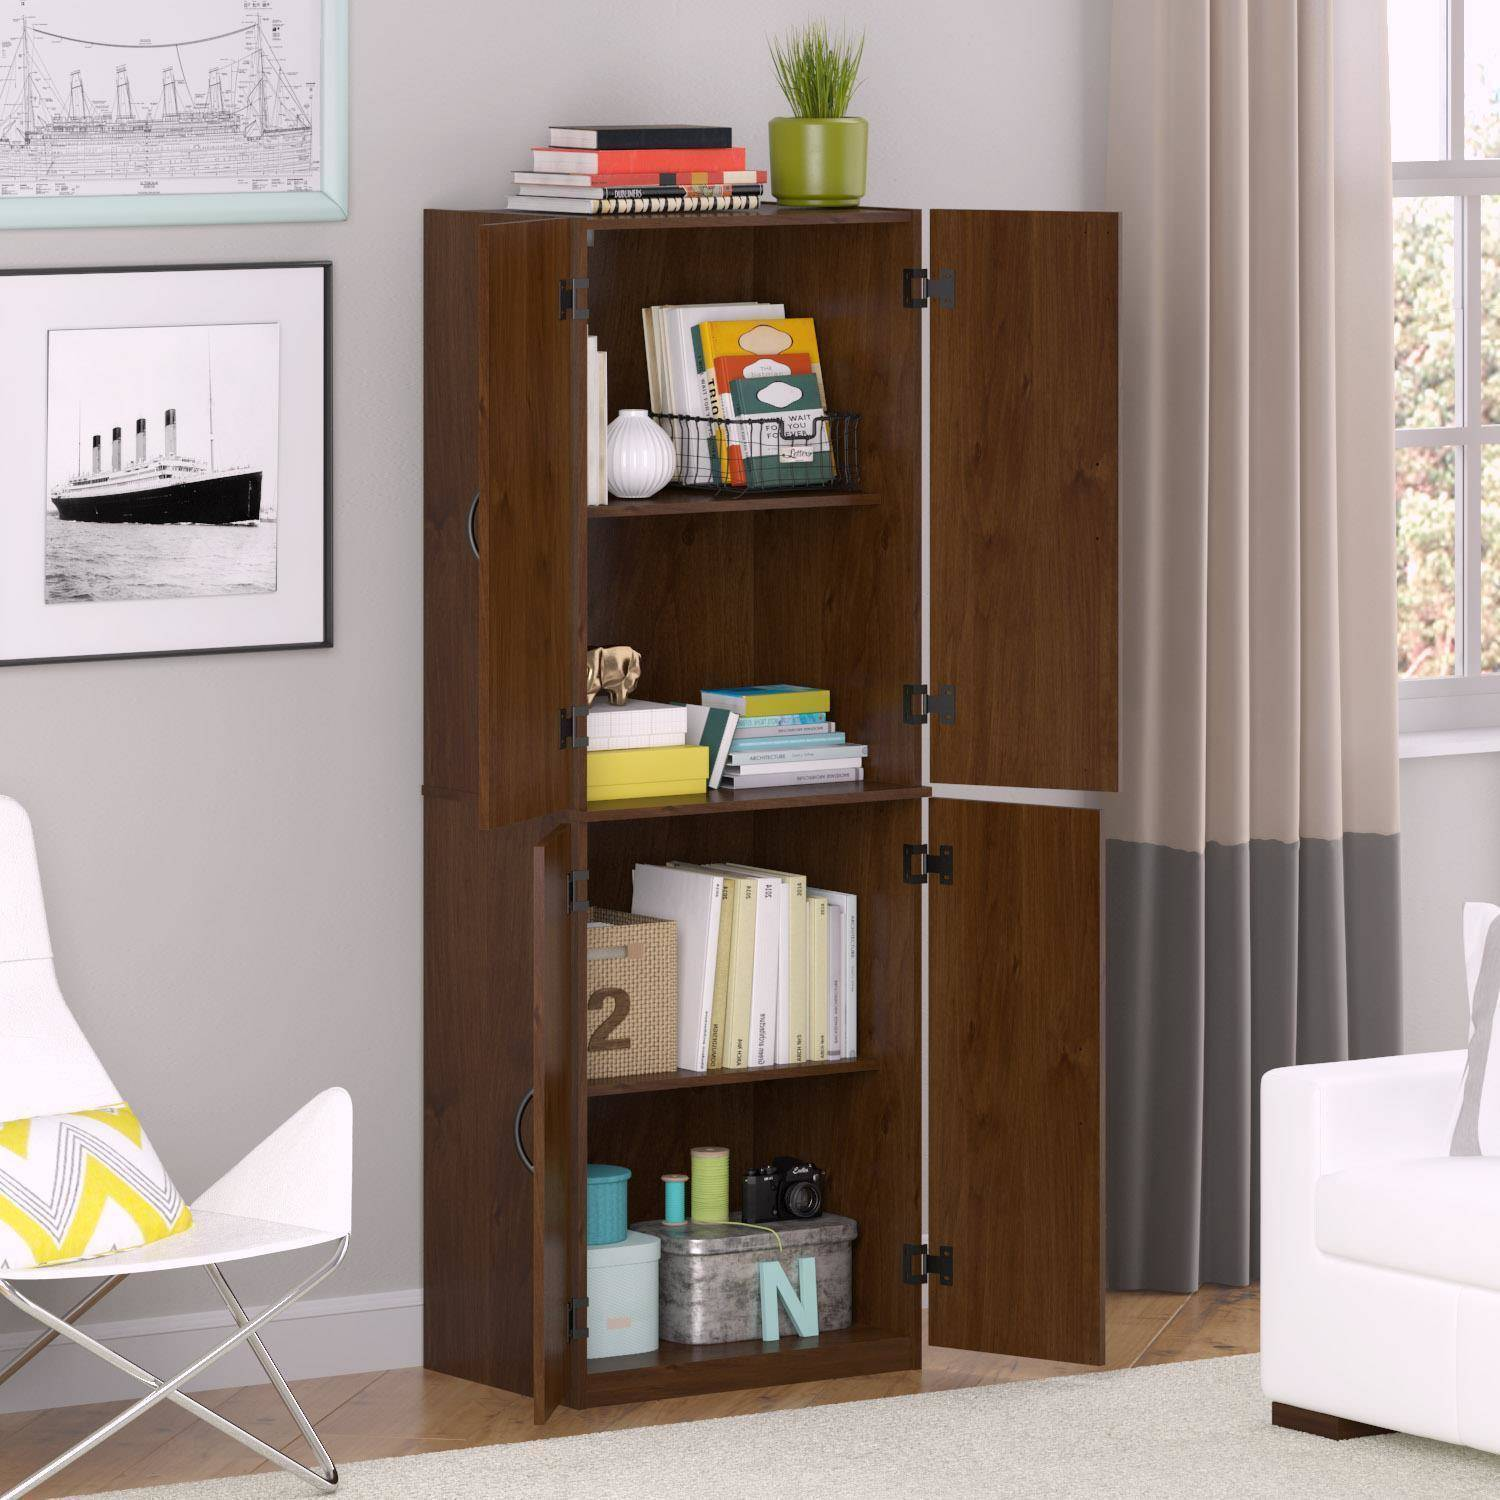 Storage Cabinet Food Pantry Shelves Office Brown Linen Closet Garage Organizer 1